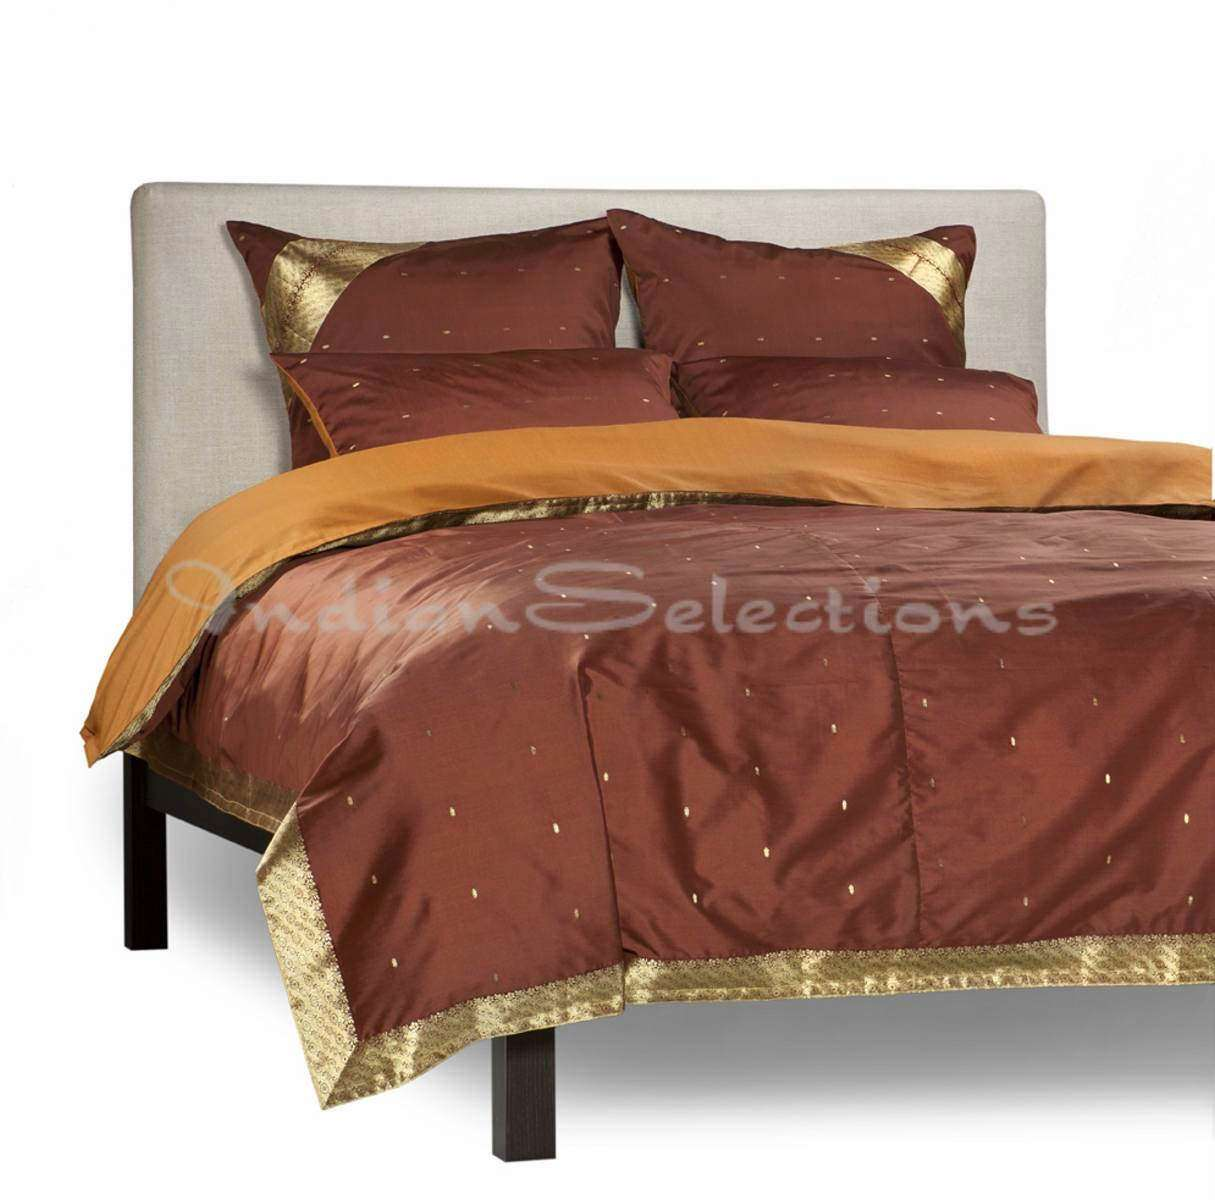 Brown-5 Piece Handmade Sari Duvet Cover Set with Pillow Covers  Euro Sham-Queen